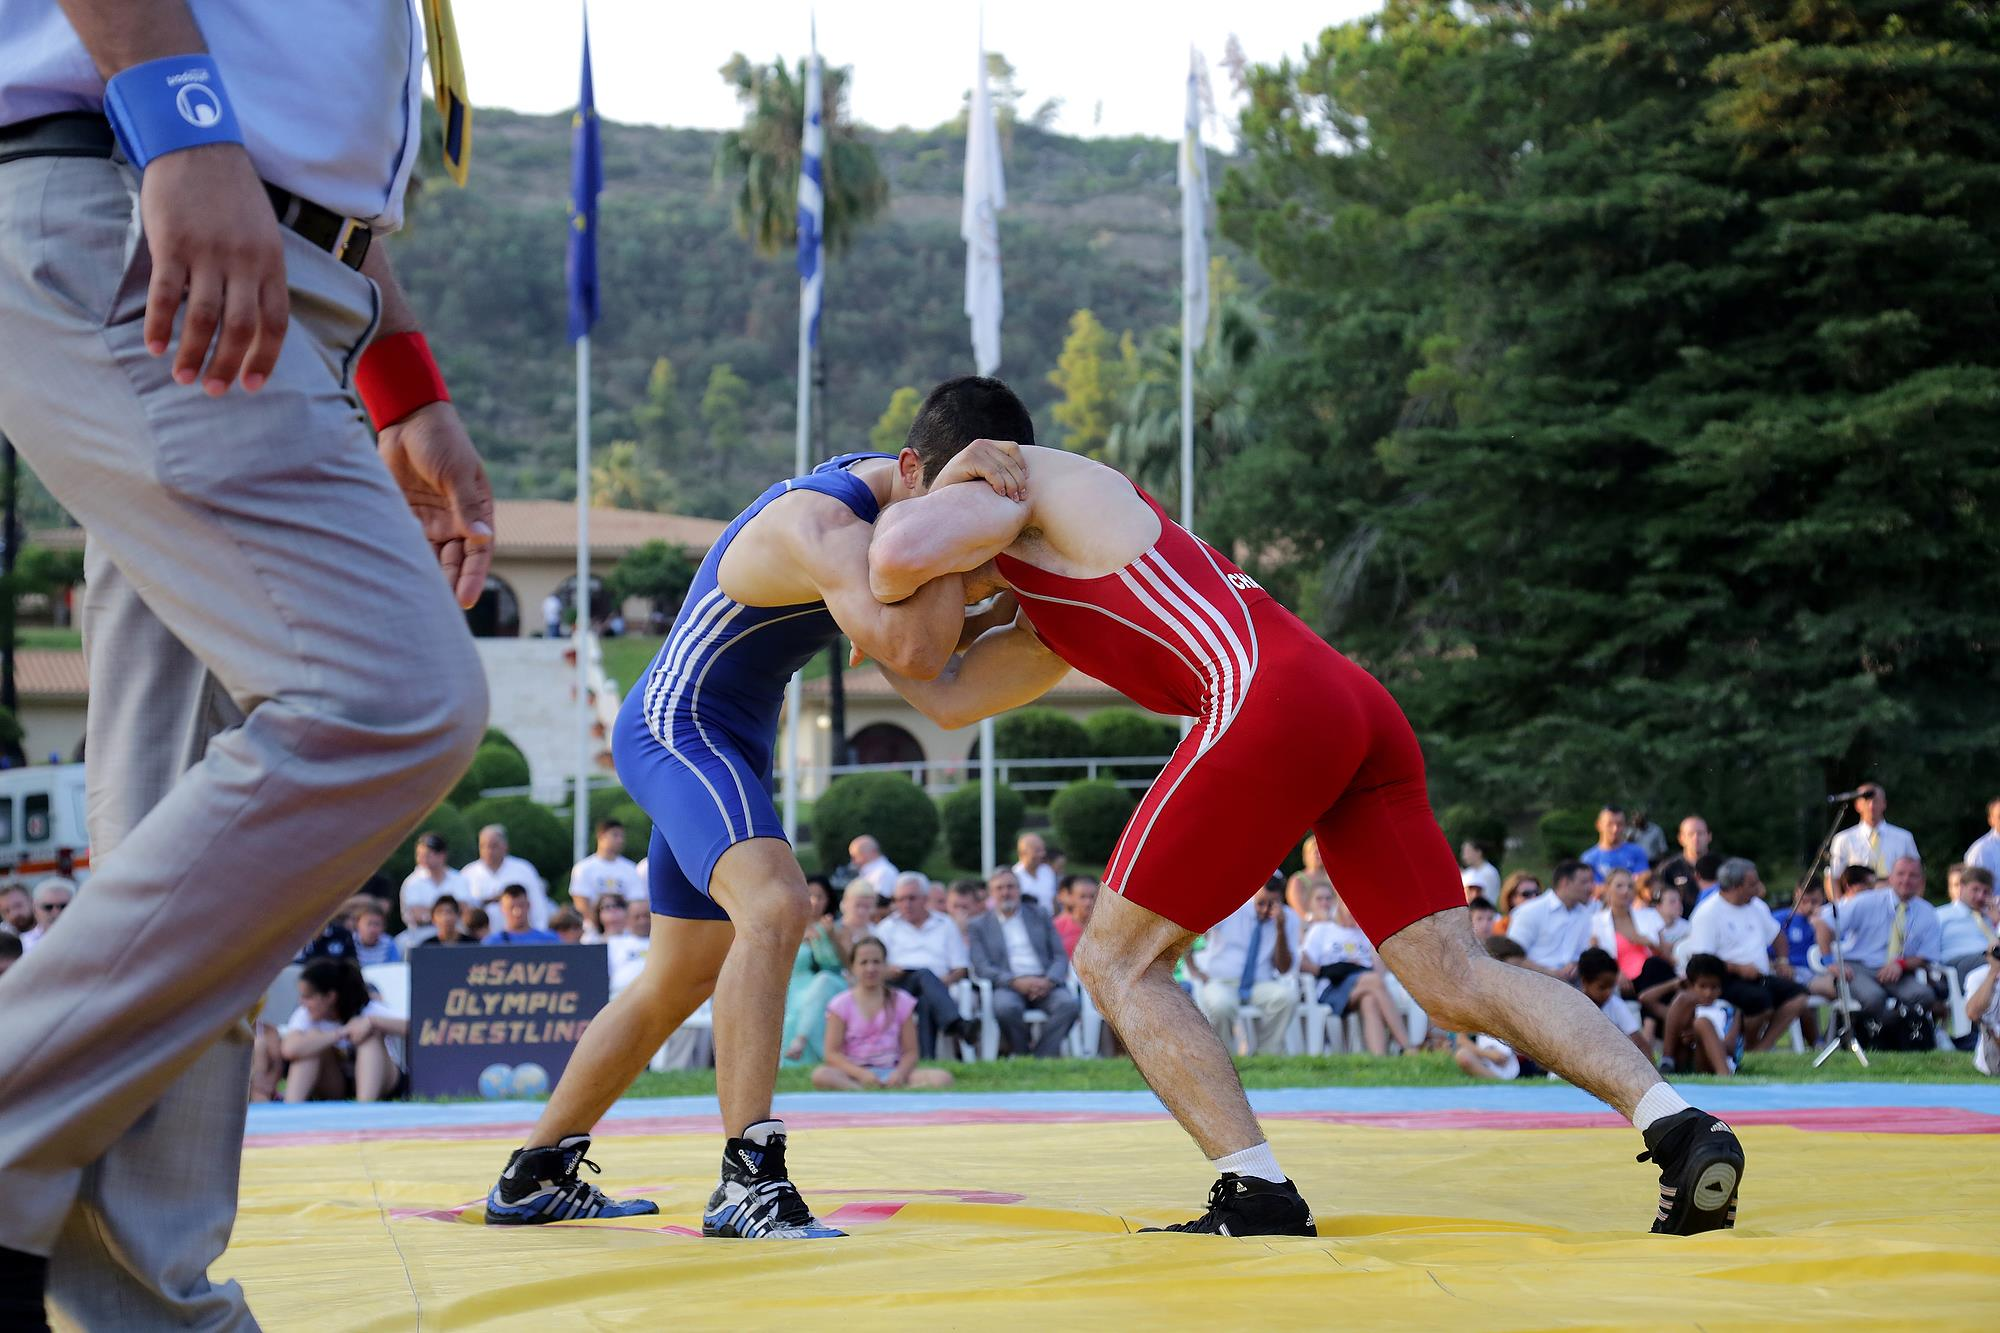 save olympic wrestling olympia